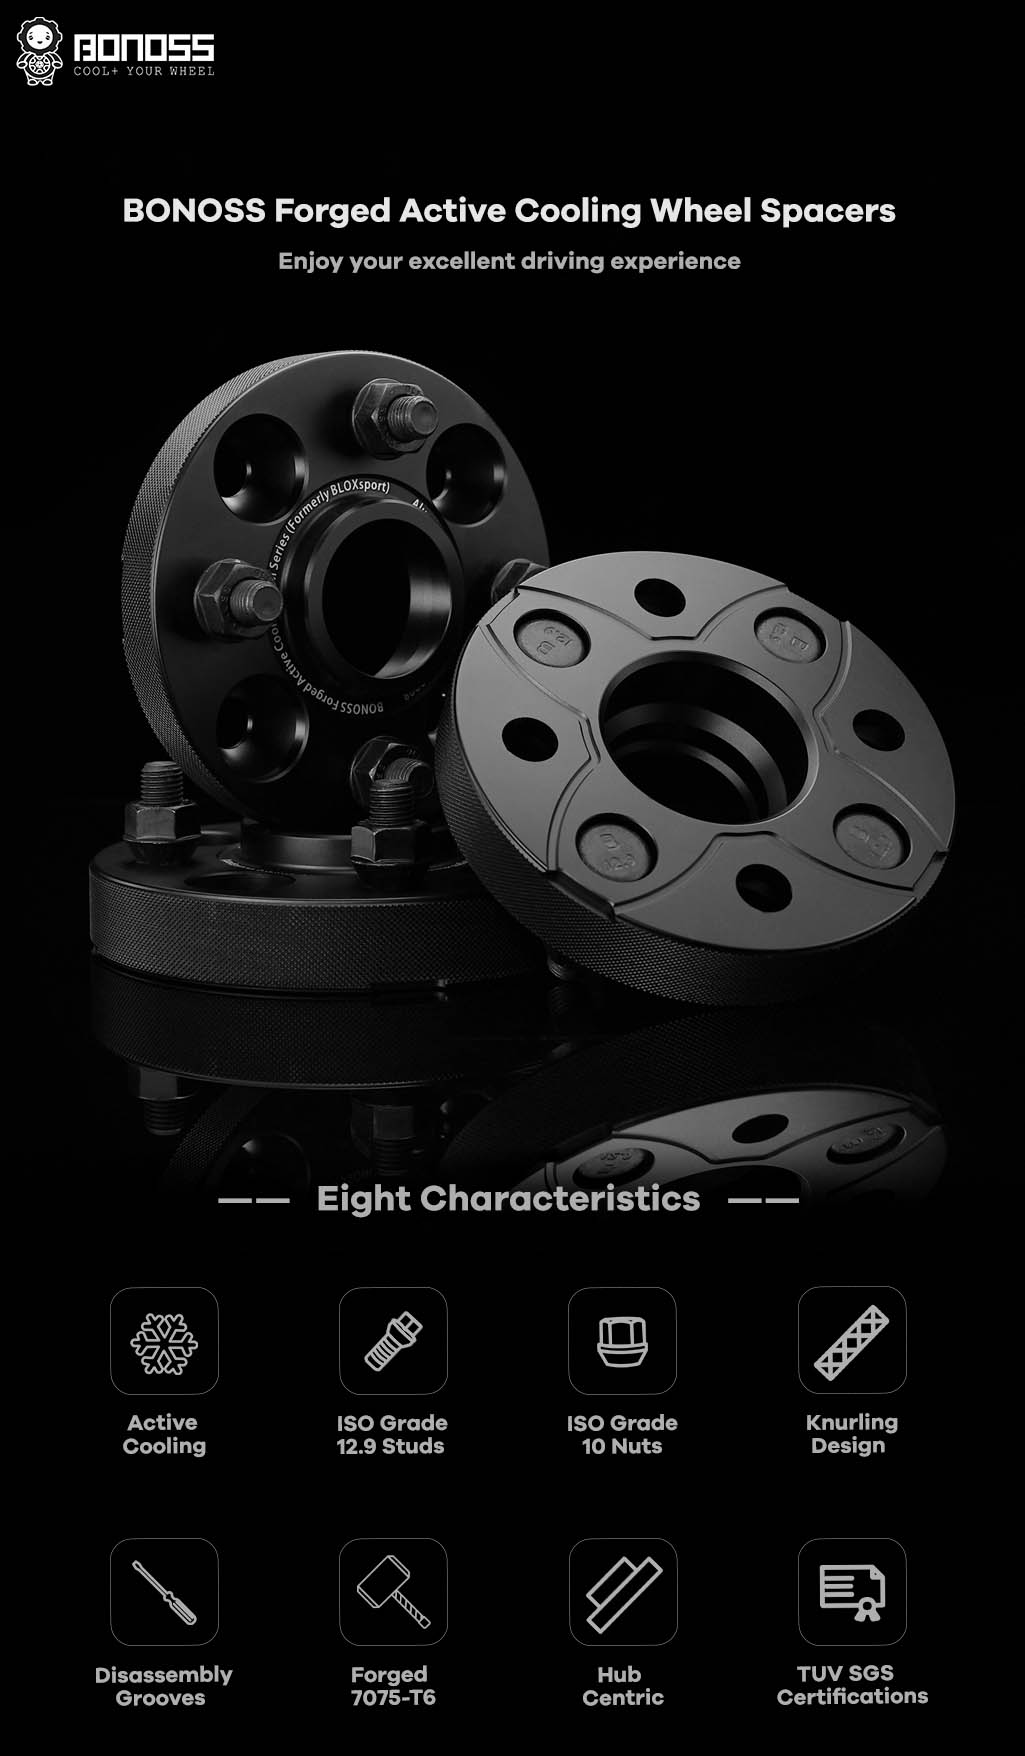 AL7075-T6 BONOSS-forged-active-cooling-hubcentric 4x108-wheel-spacer-by-lulu-1